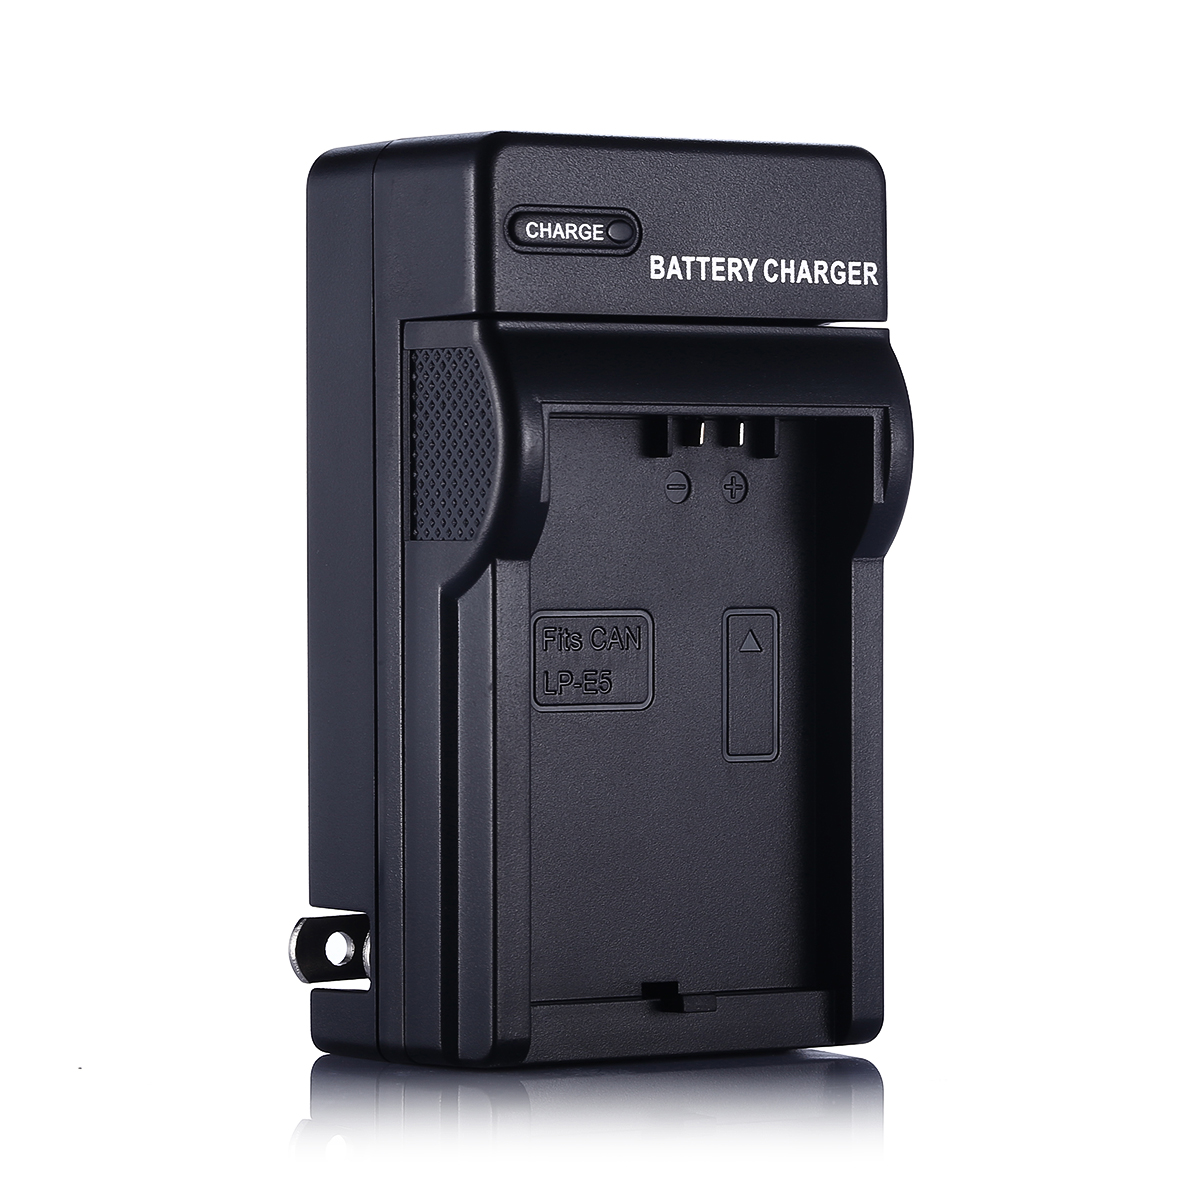 ��f��k9ge�f�x�_lp-e5 lpe5 battery pack + charger for canon rebel t1i xs xsi